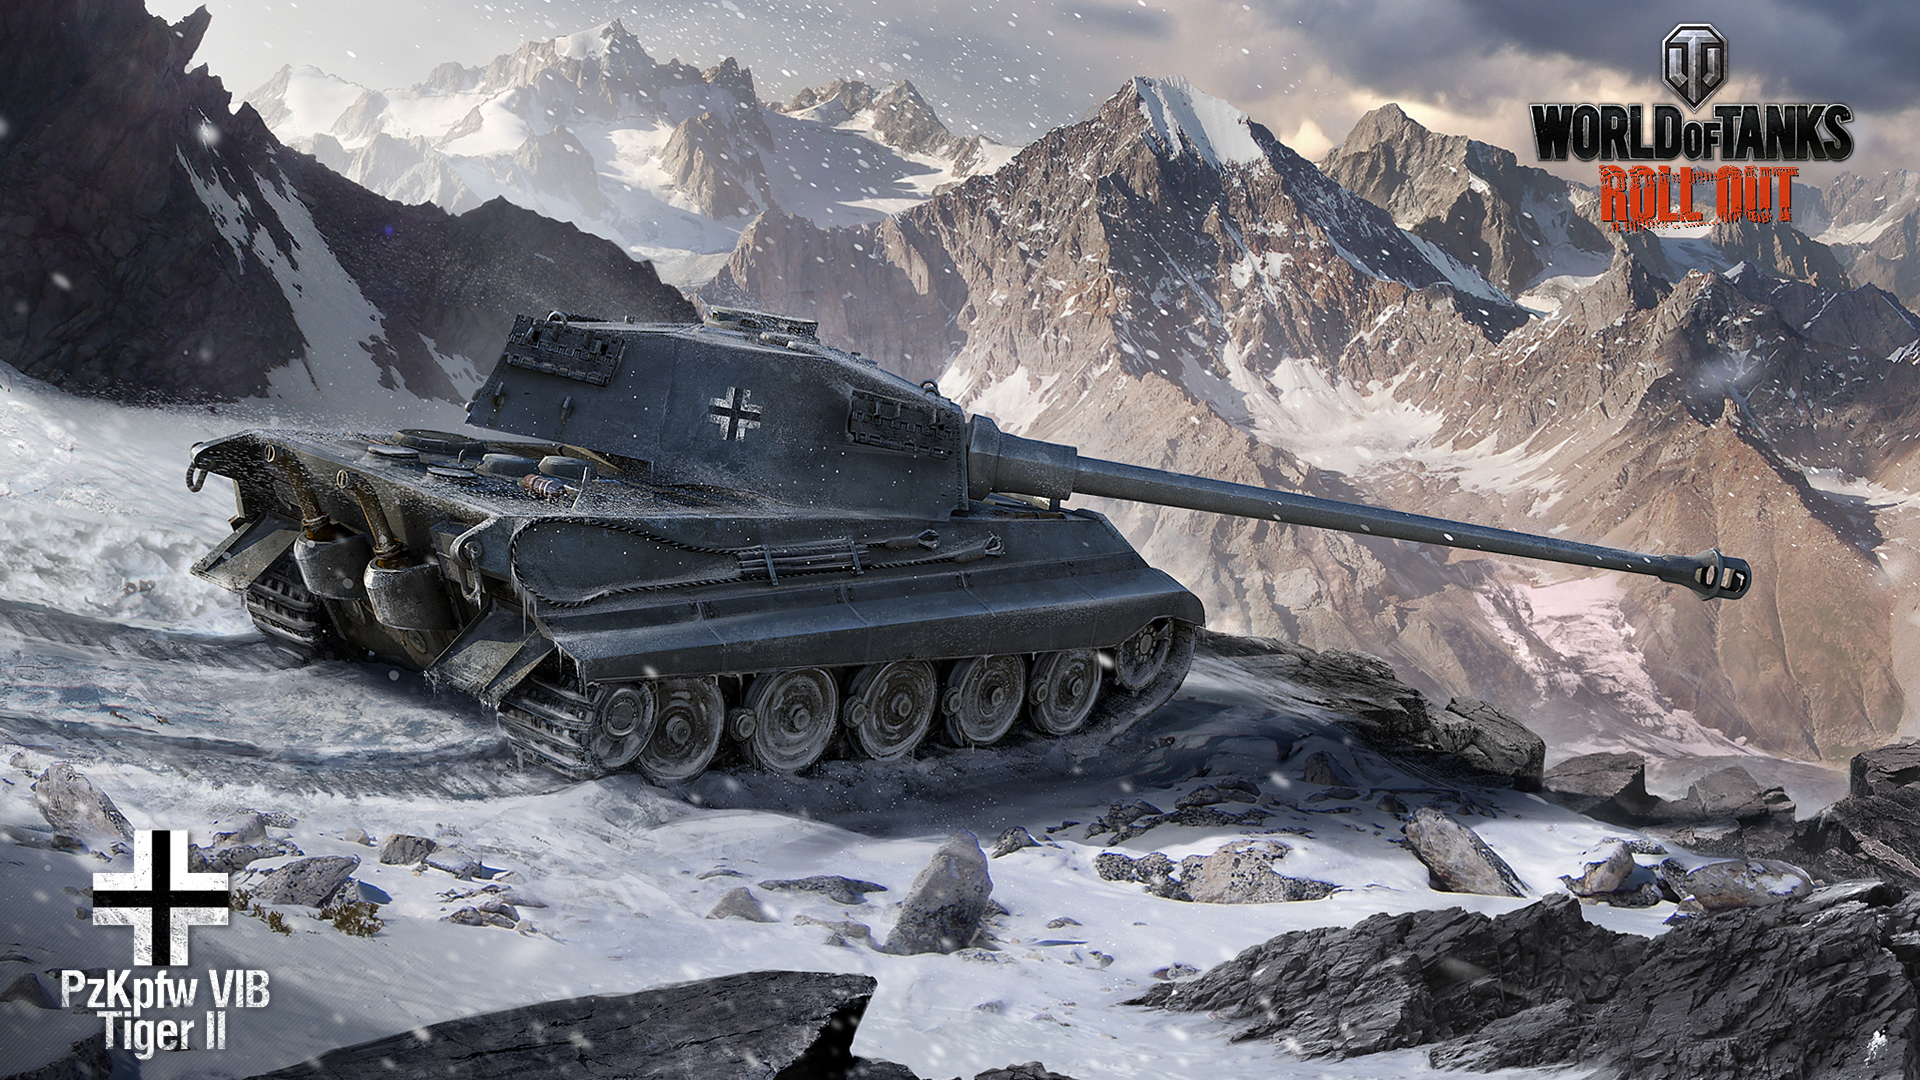 tank Tiger II wallpapers and images   wallpapers pictures photos 1920x1080